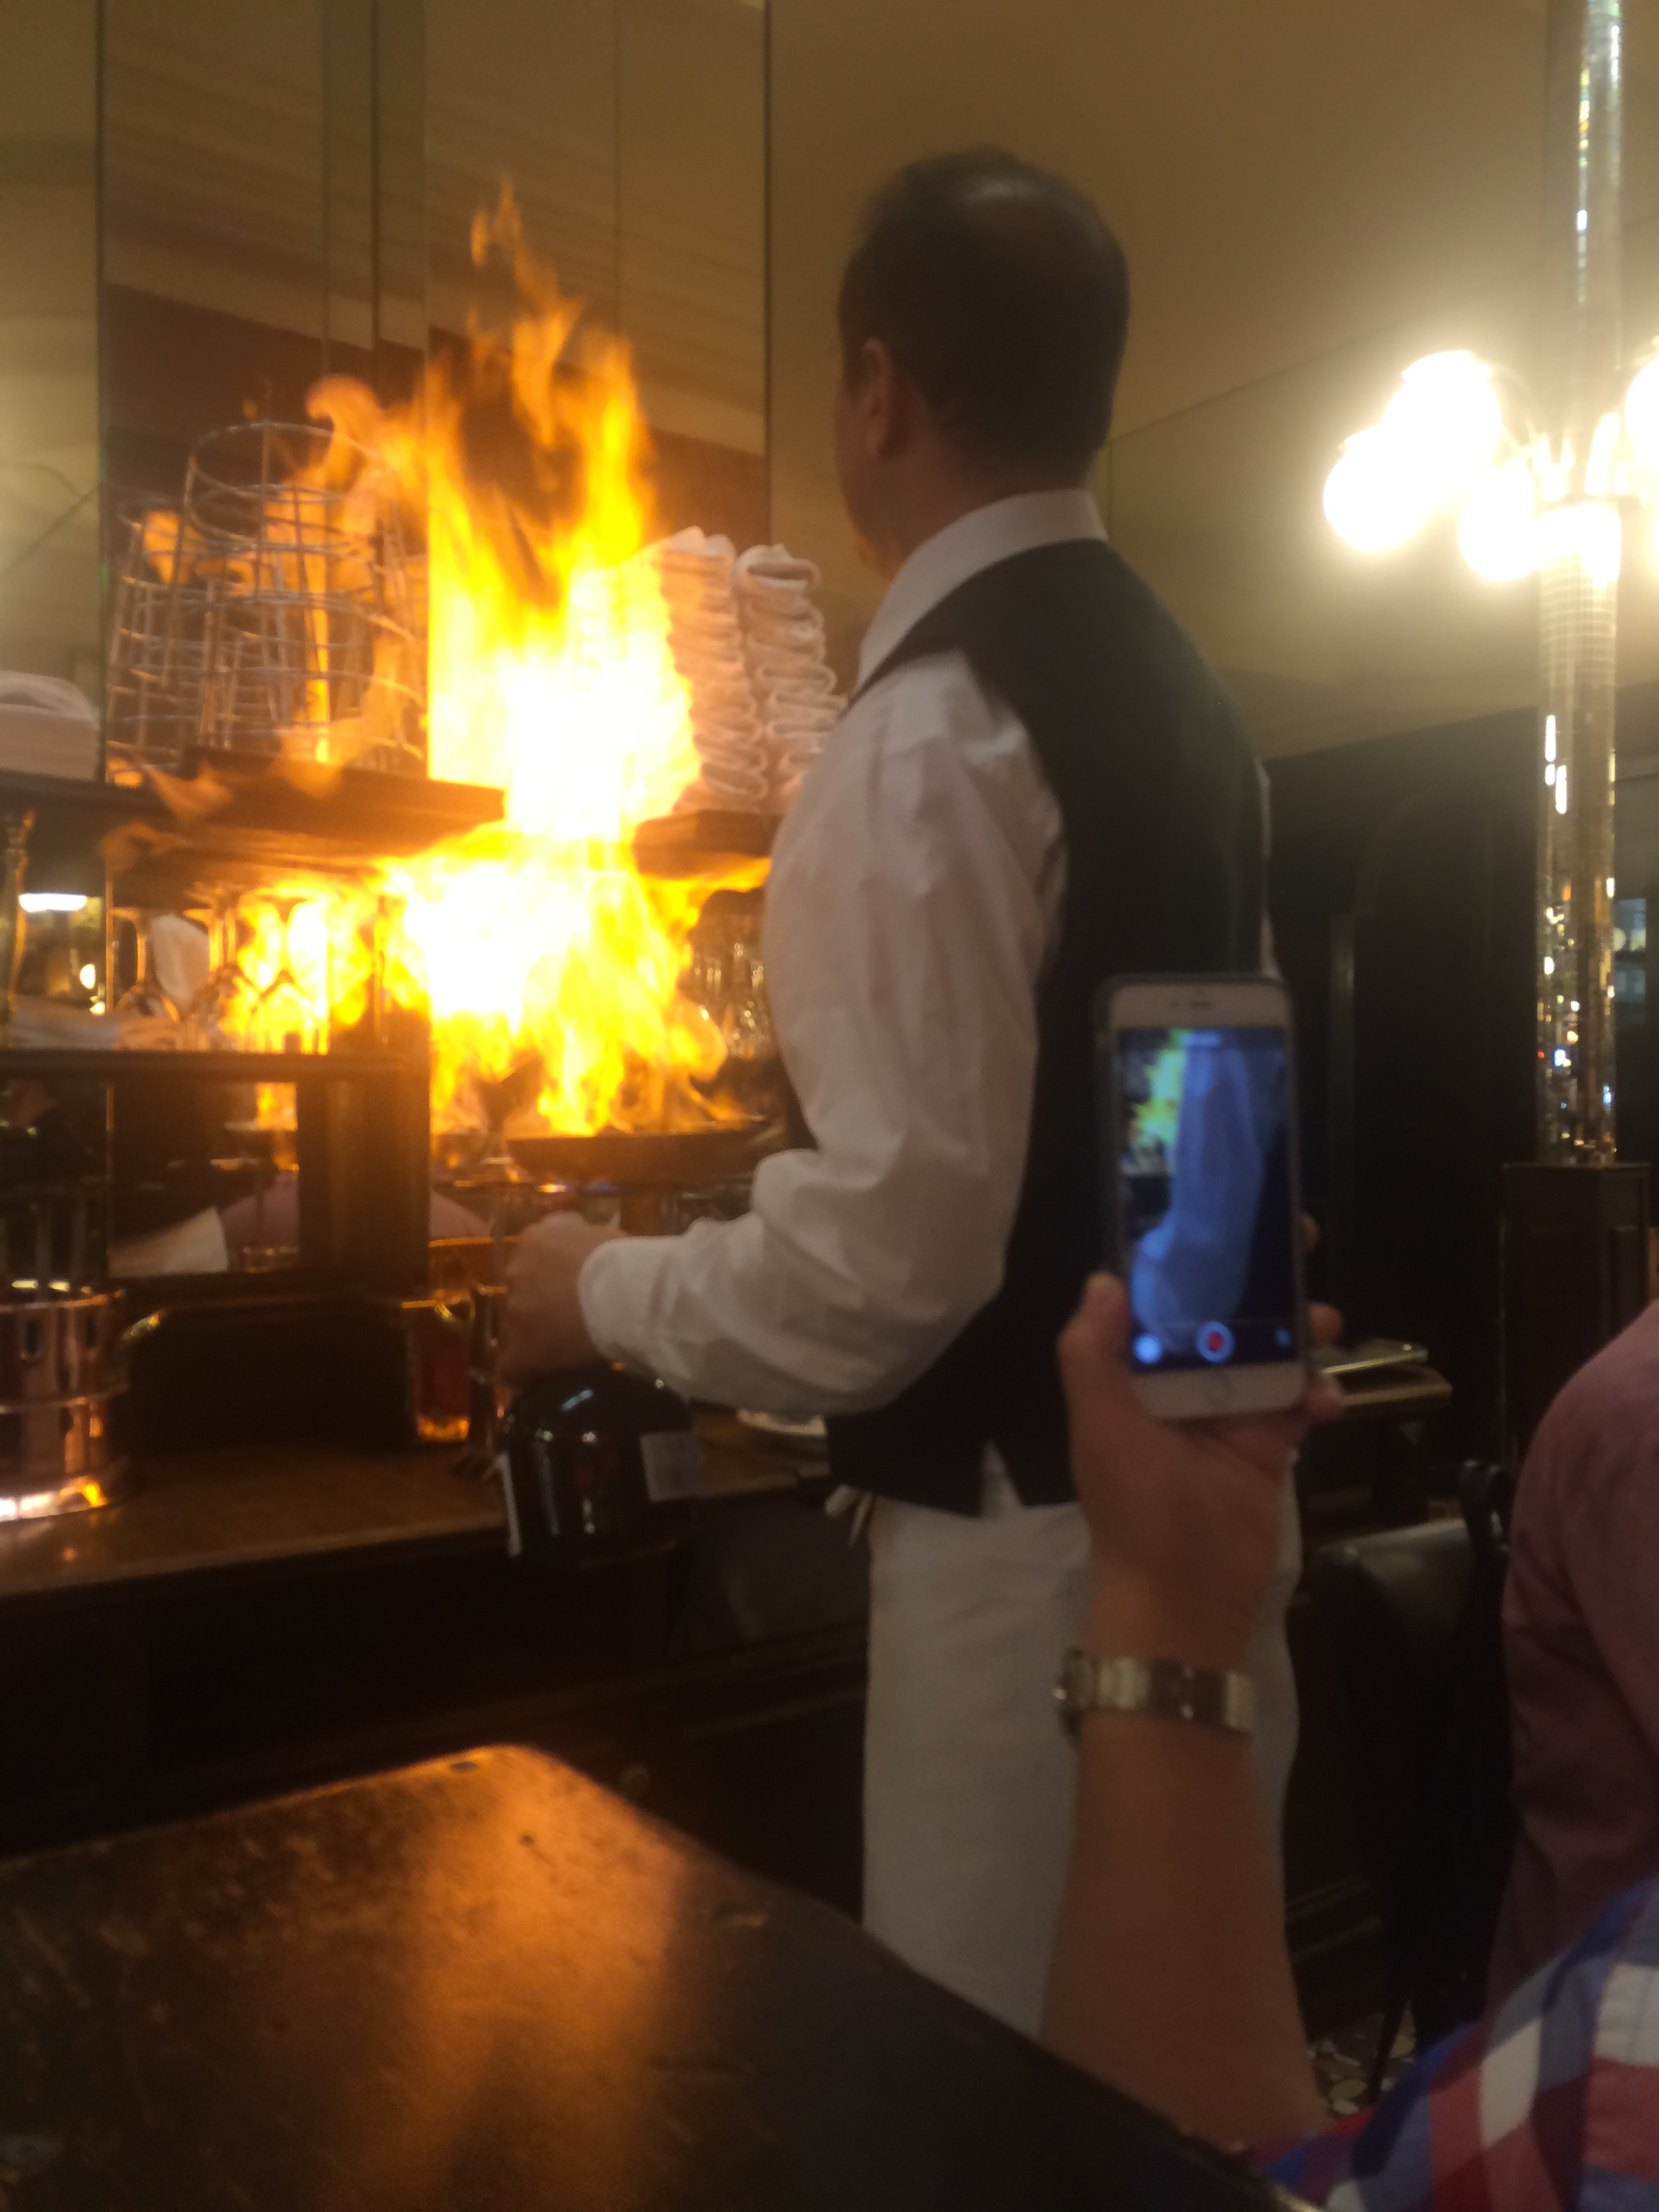 Enjoying the food while the waiter is trying to burn the restaurant.